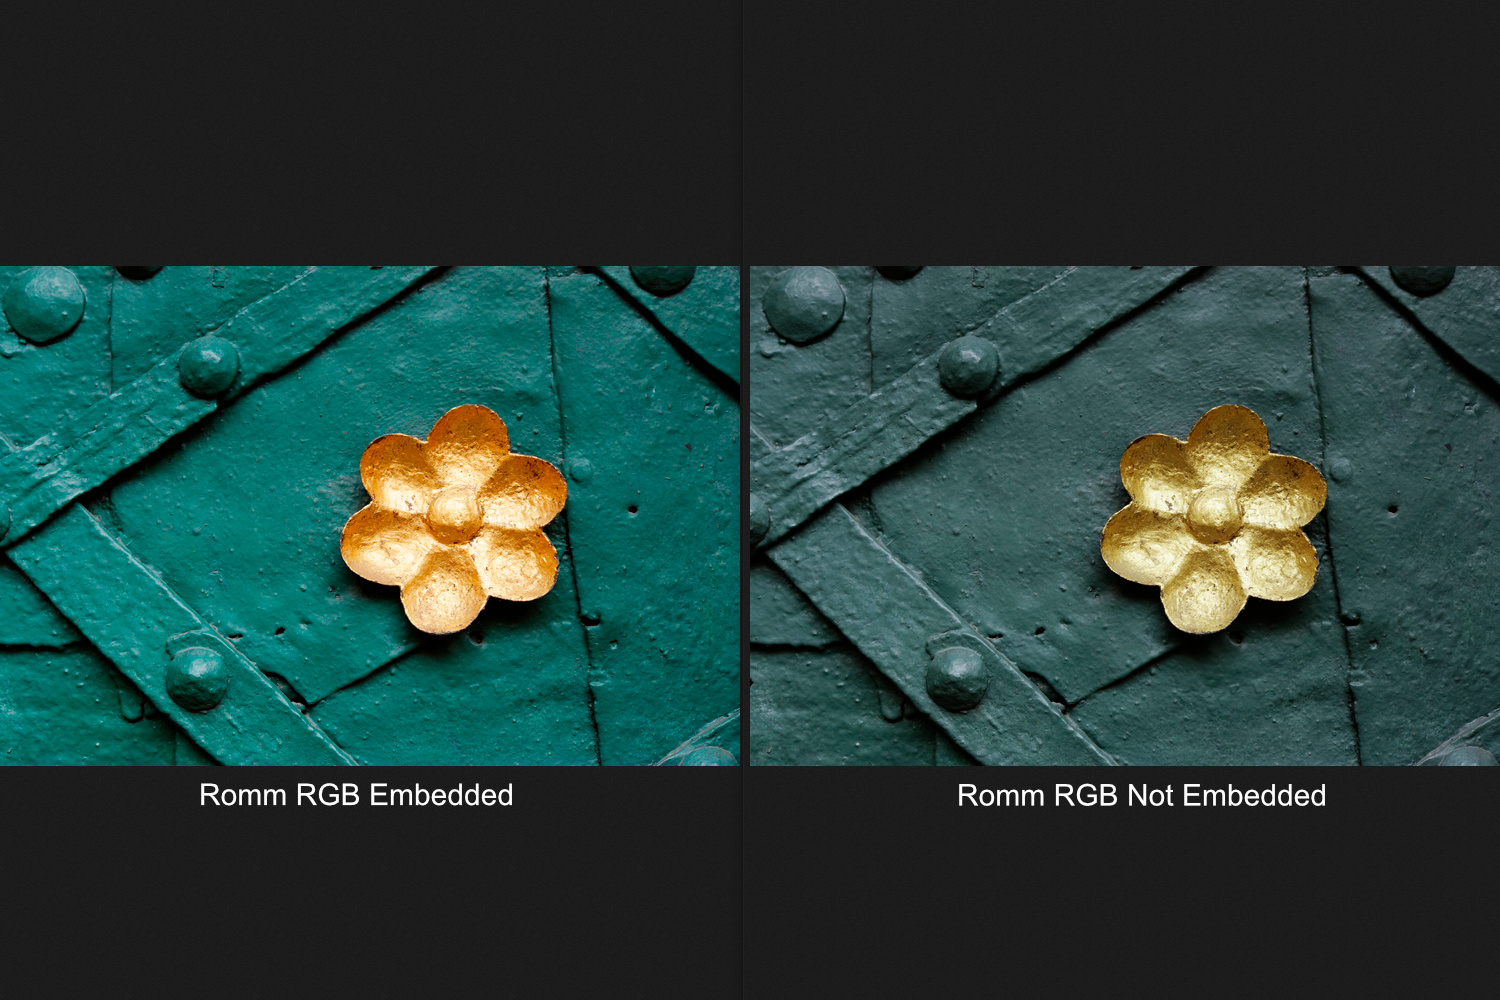 Embedding ICC profiles into images color management in Affinity Photo